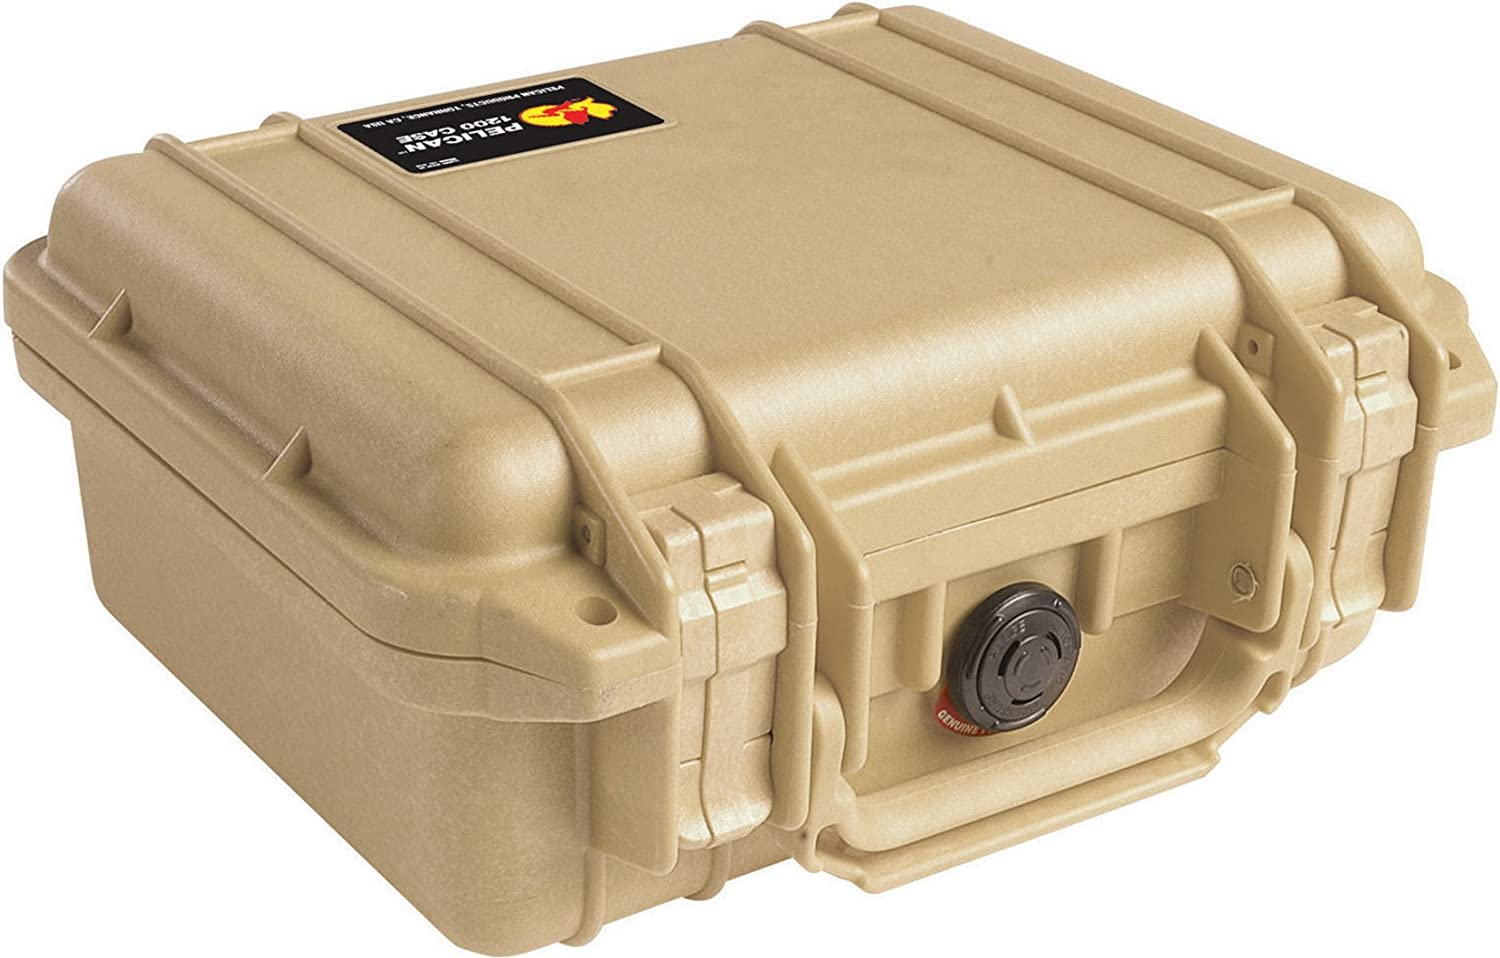 Pelican 1200 Camera Case With Foam (Desert Tan)